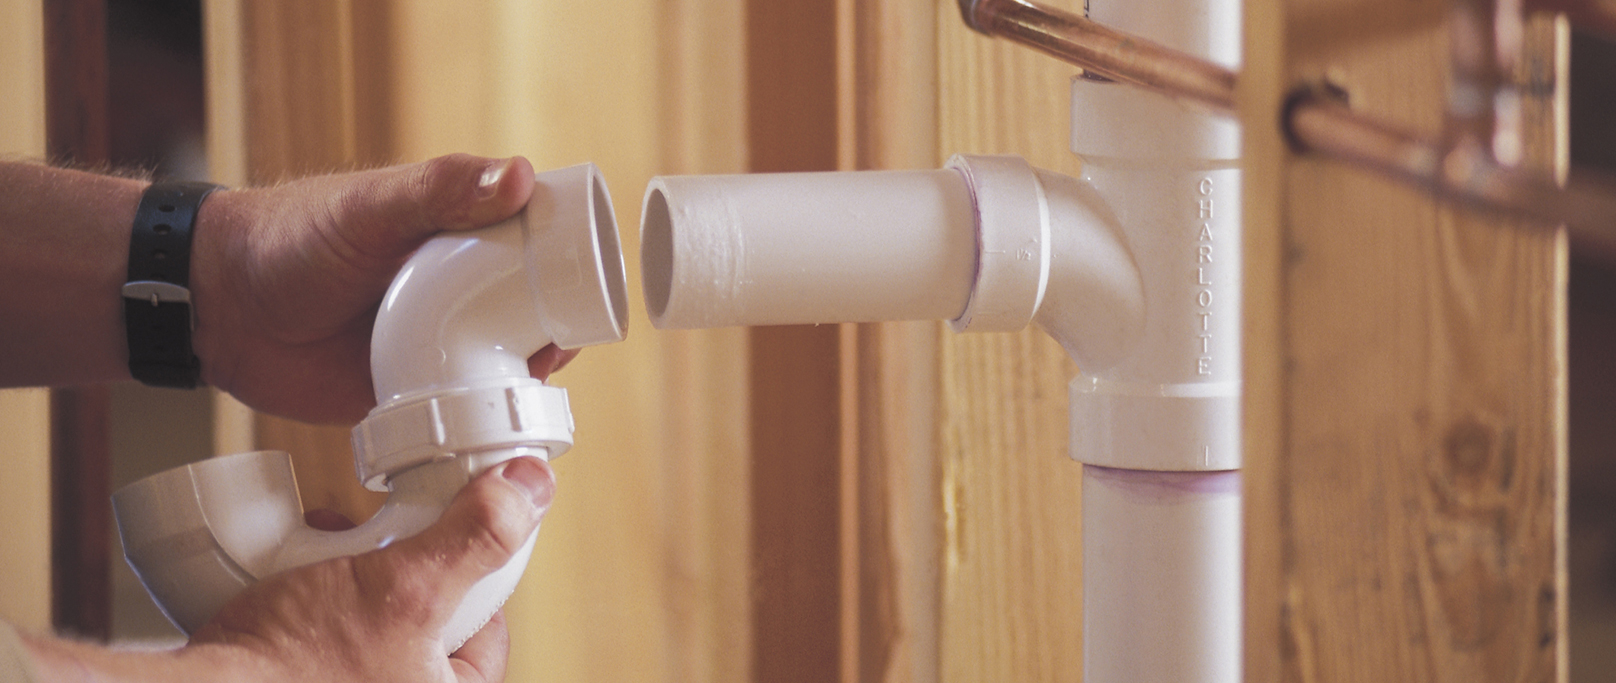 At your service plumbing company denver plumbers in for Copper pipes vs plastic pipes